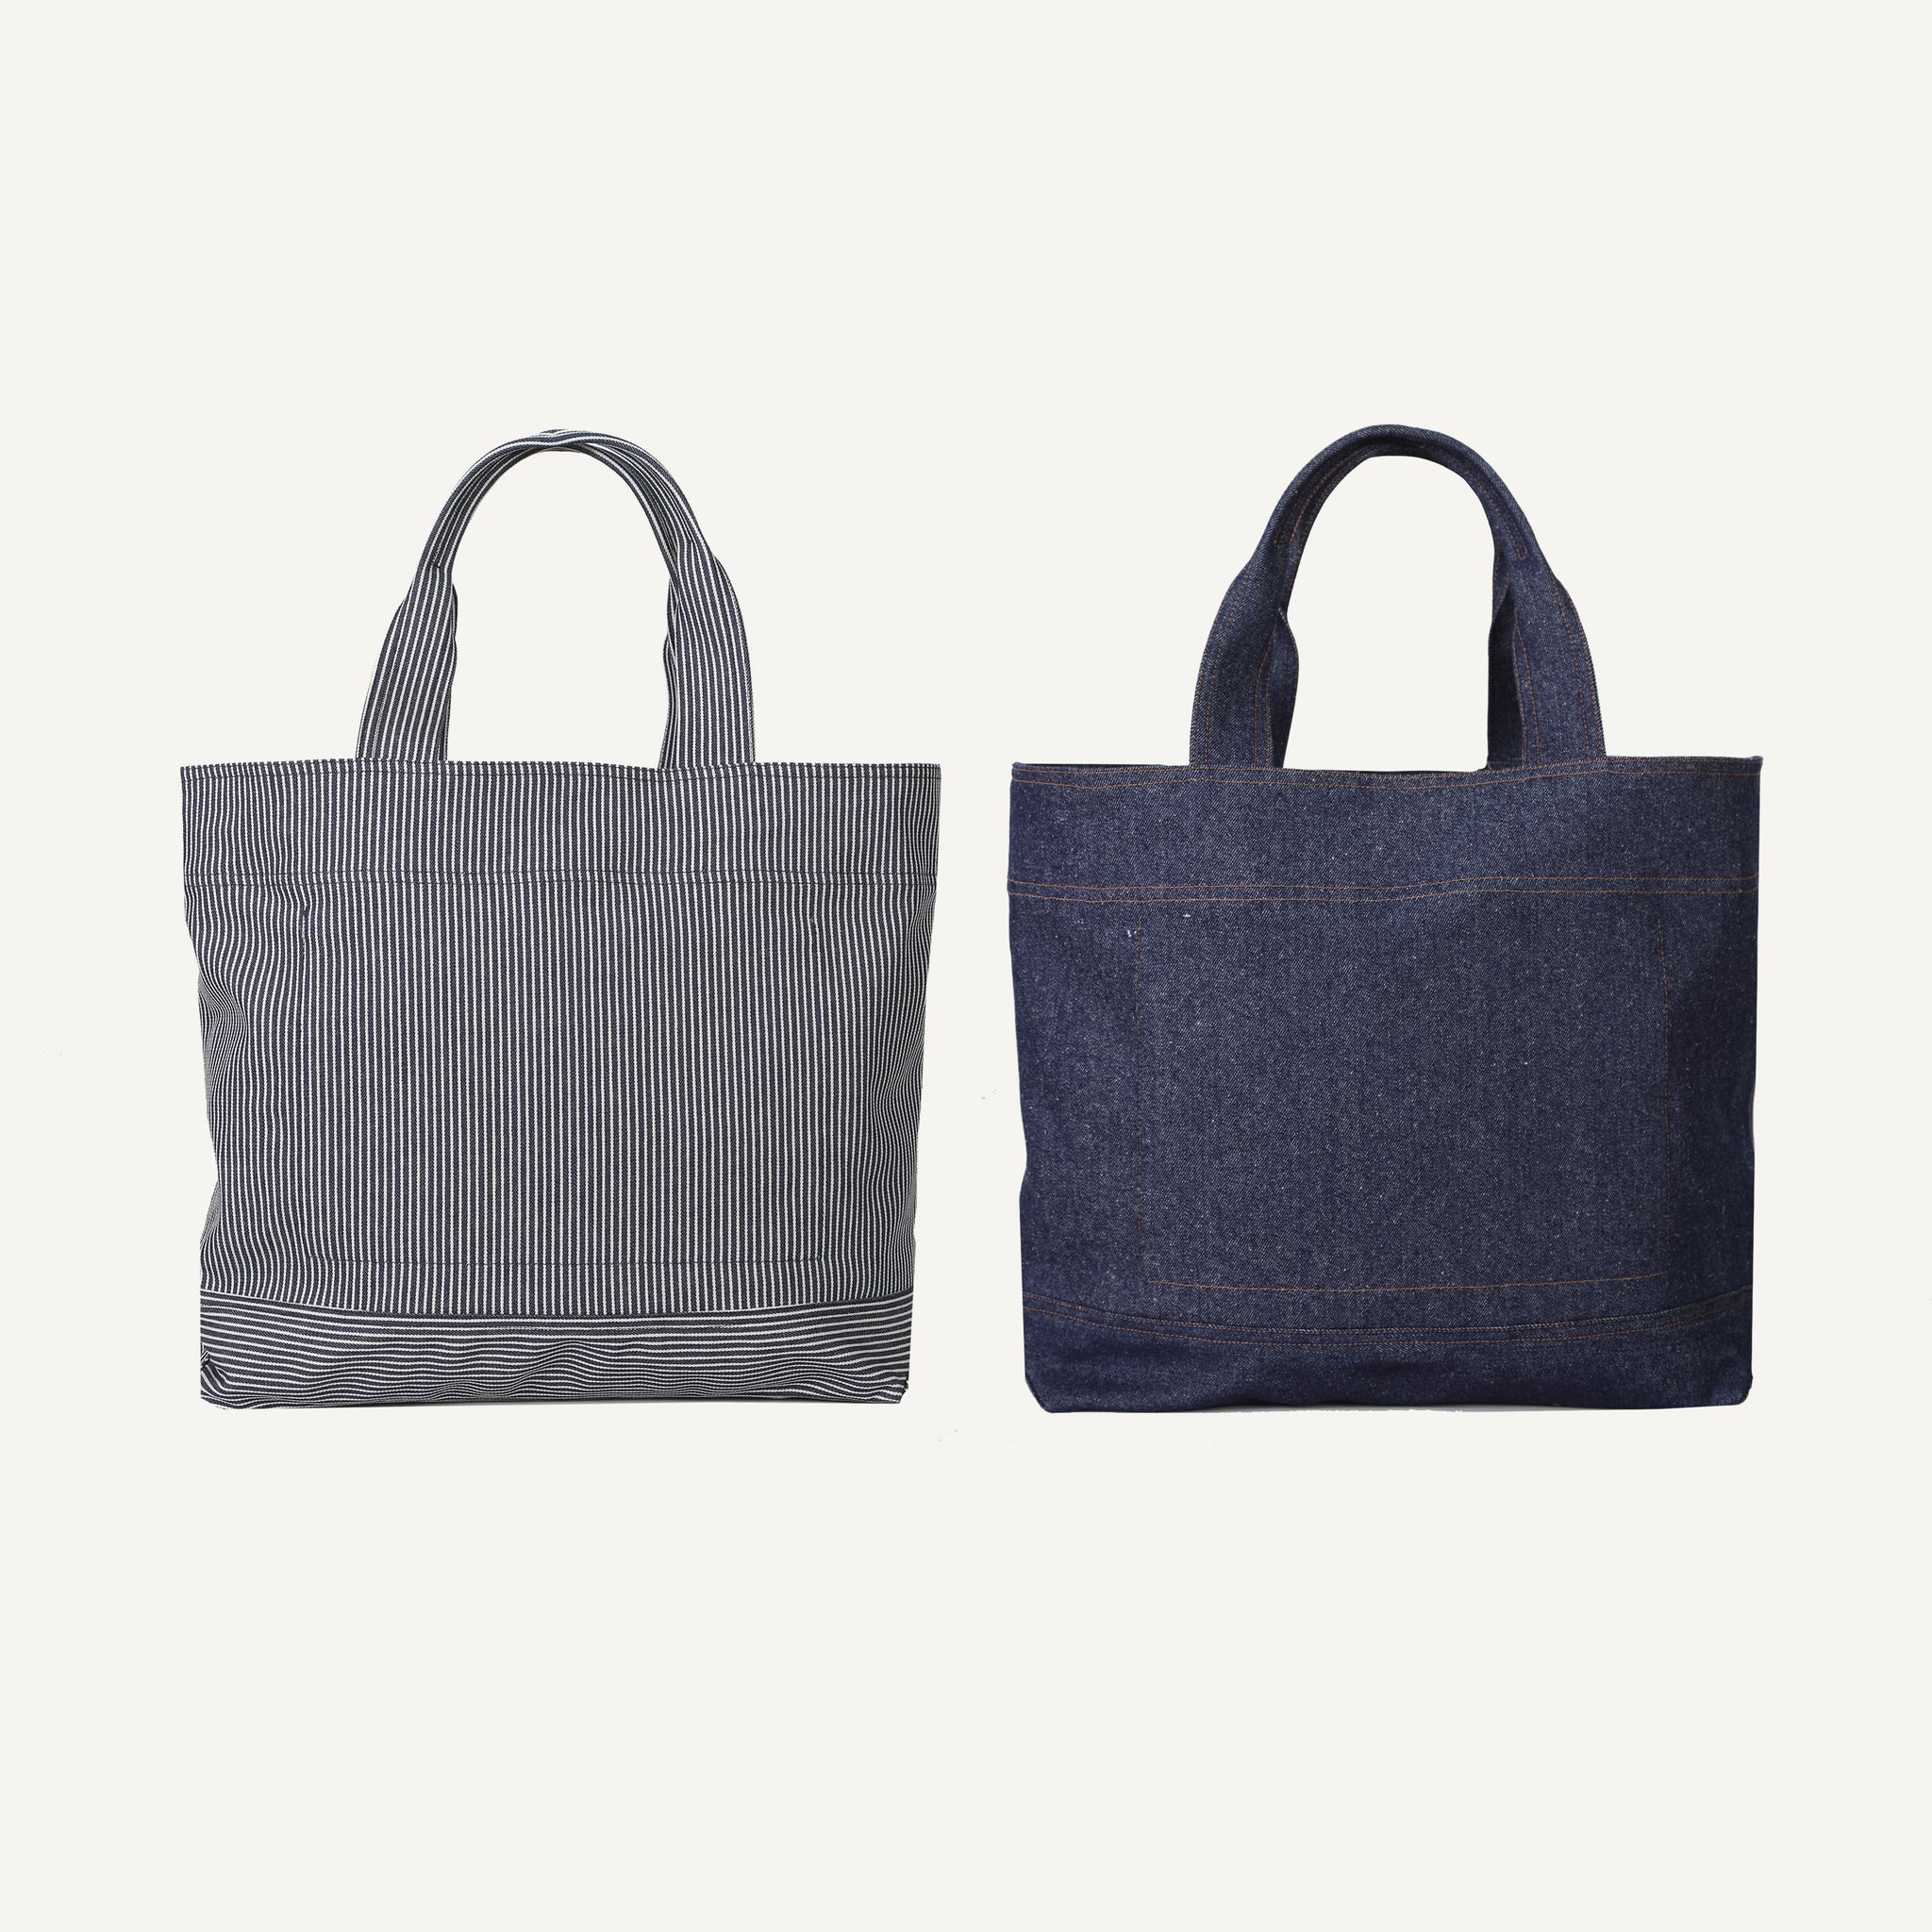 INDIGO-DYED DENIM TOTE